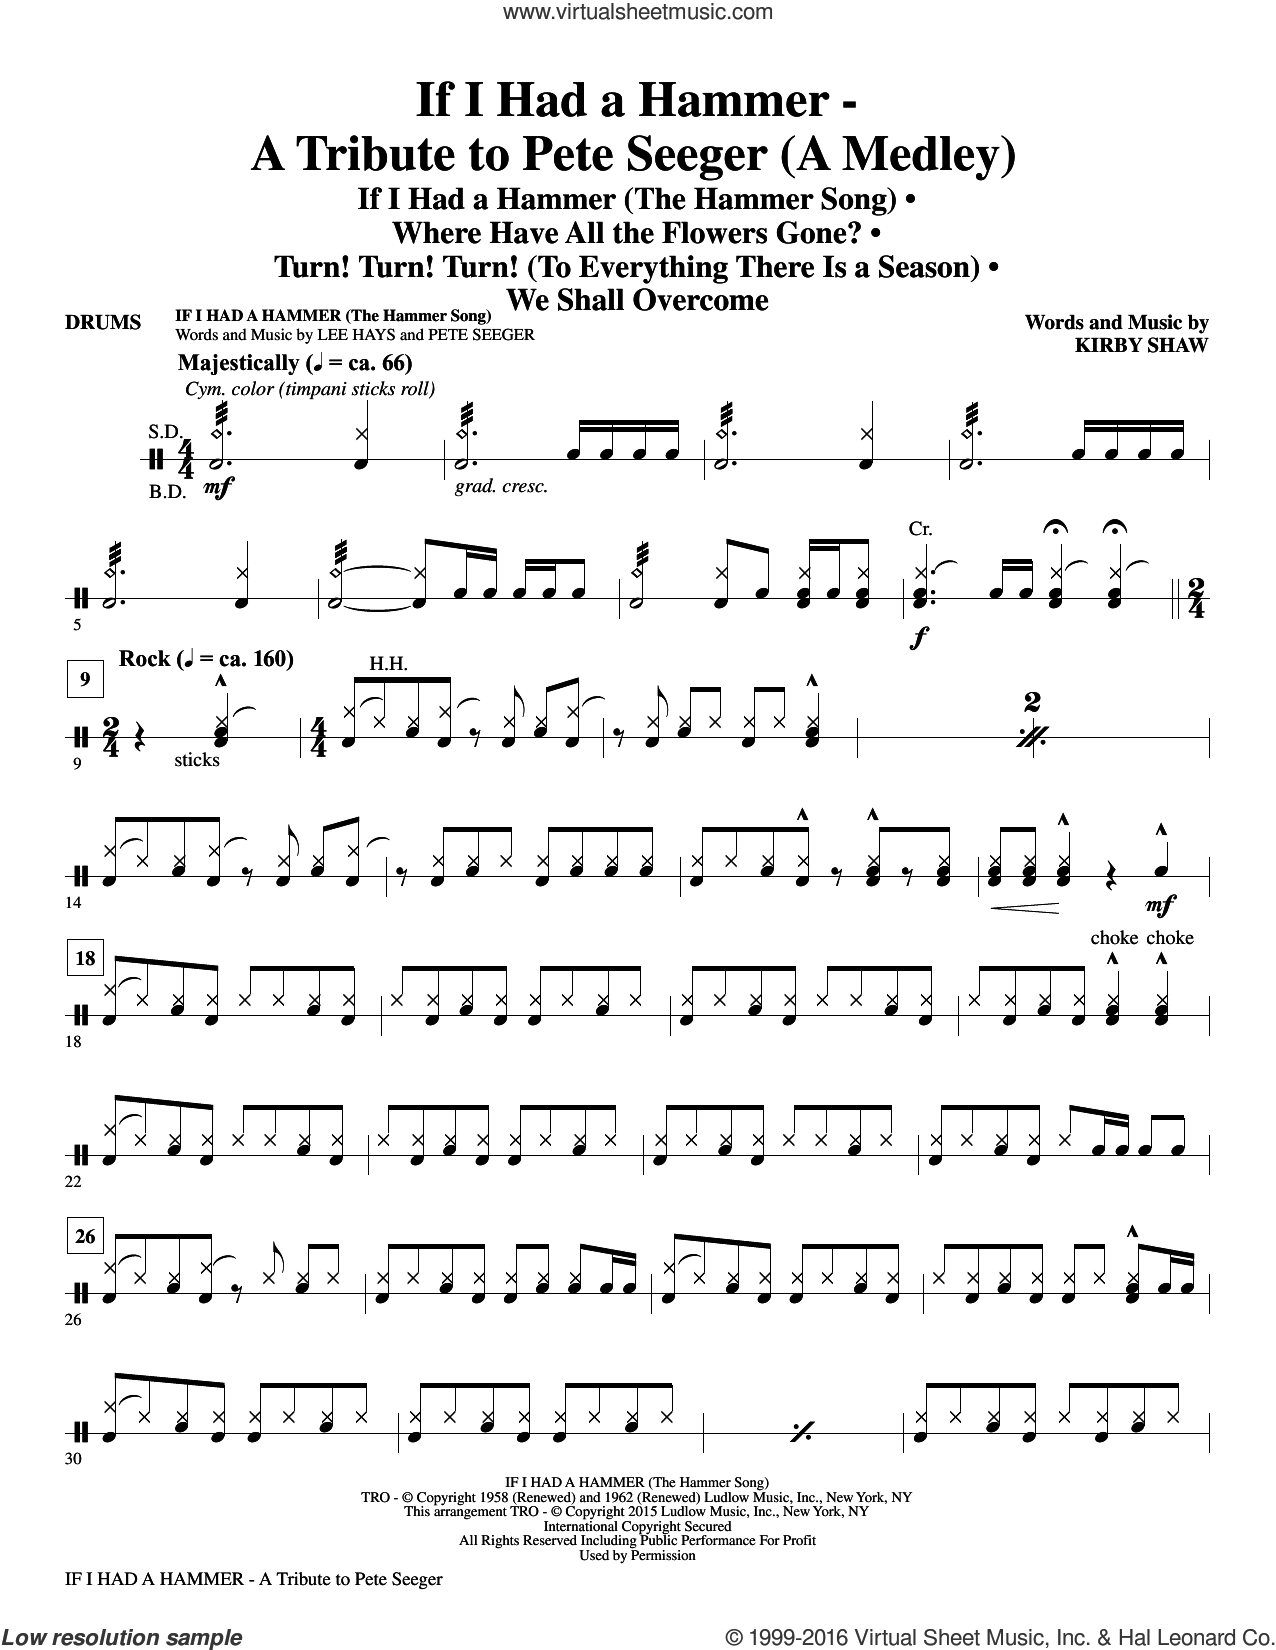 If I Had A Hammer, a tribute to pete seeger sheet music for orchestra/band (drums) by Pete Seeger, Kirby Shaw, Peter, Paul & Mary, Trini Lopez and Lee Hays, intermediate skill level